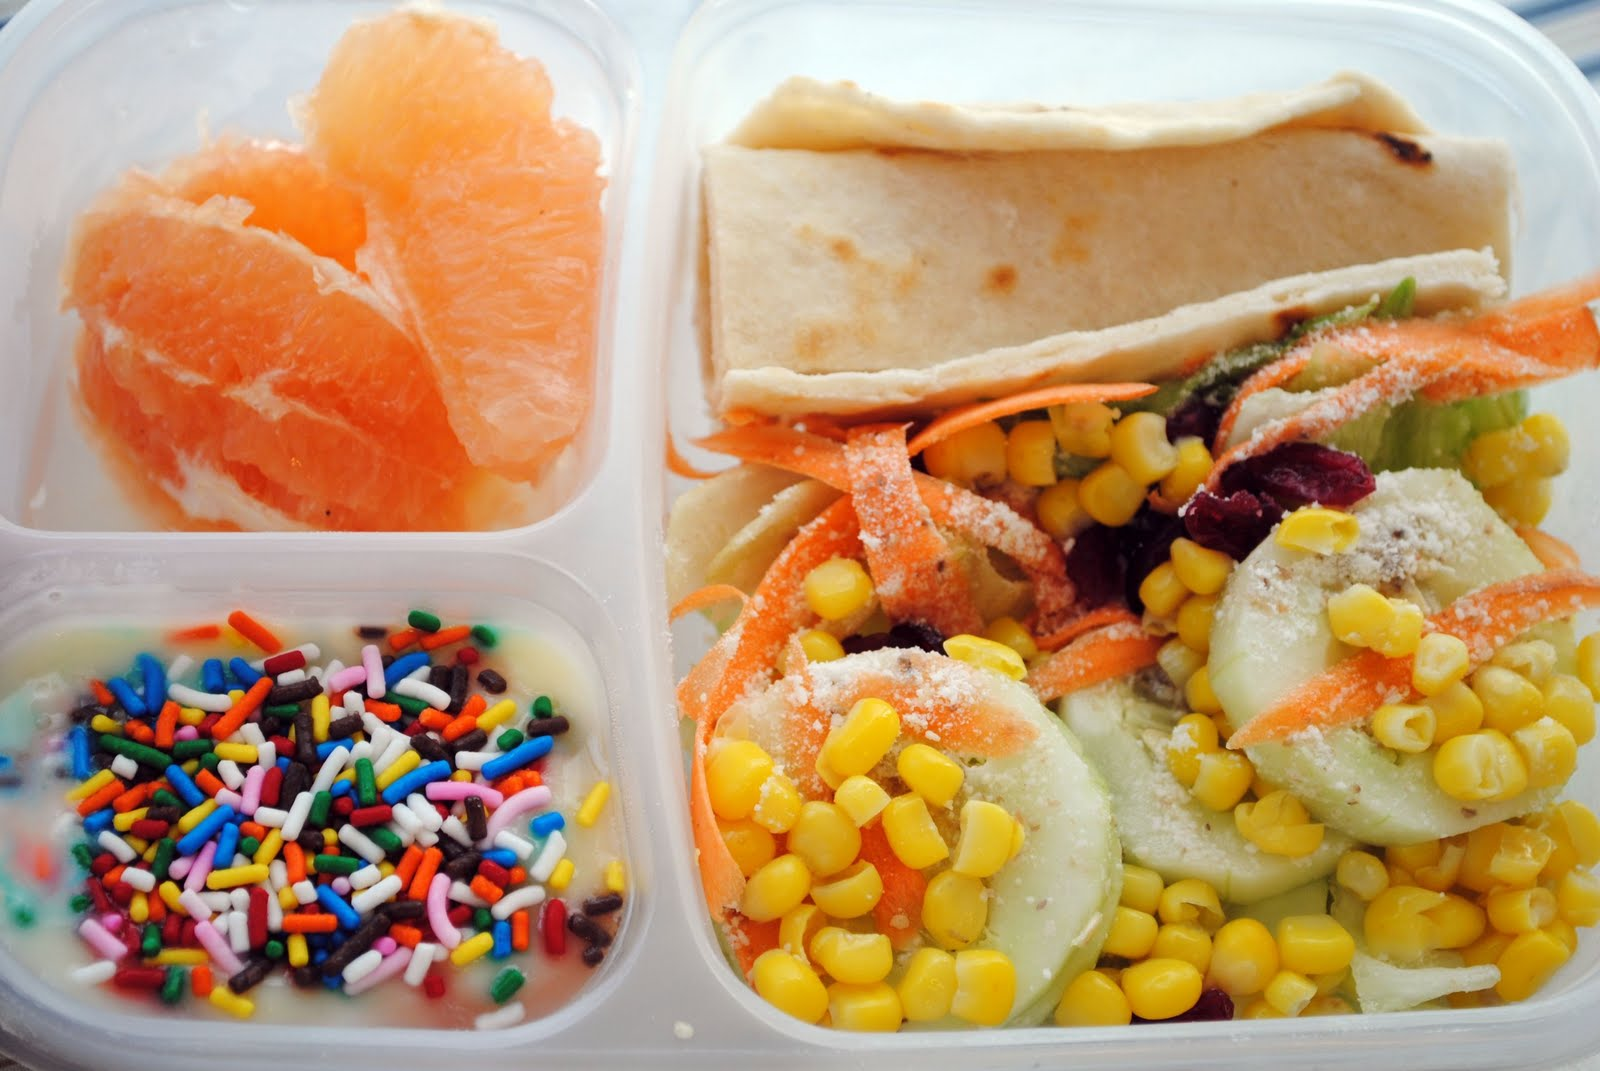 waste free lunch Universal school mealsno such thing as a free lunch free school meals for the  wealthy is hardly a policy for liberal democrats to shout about.